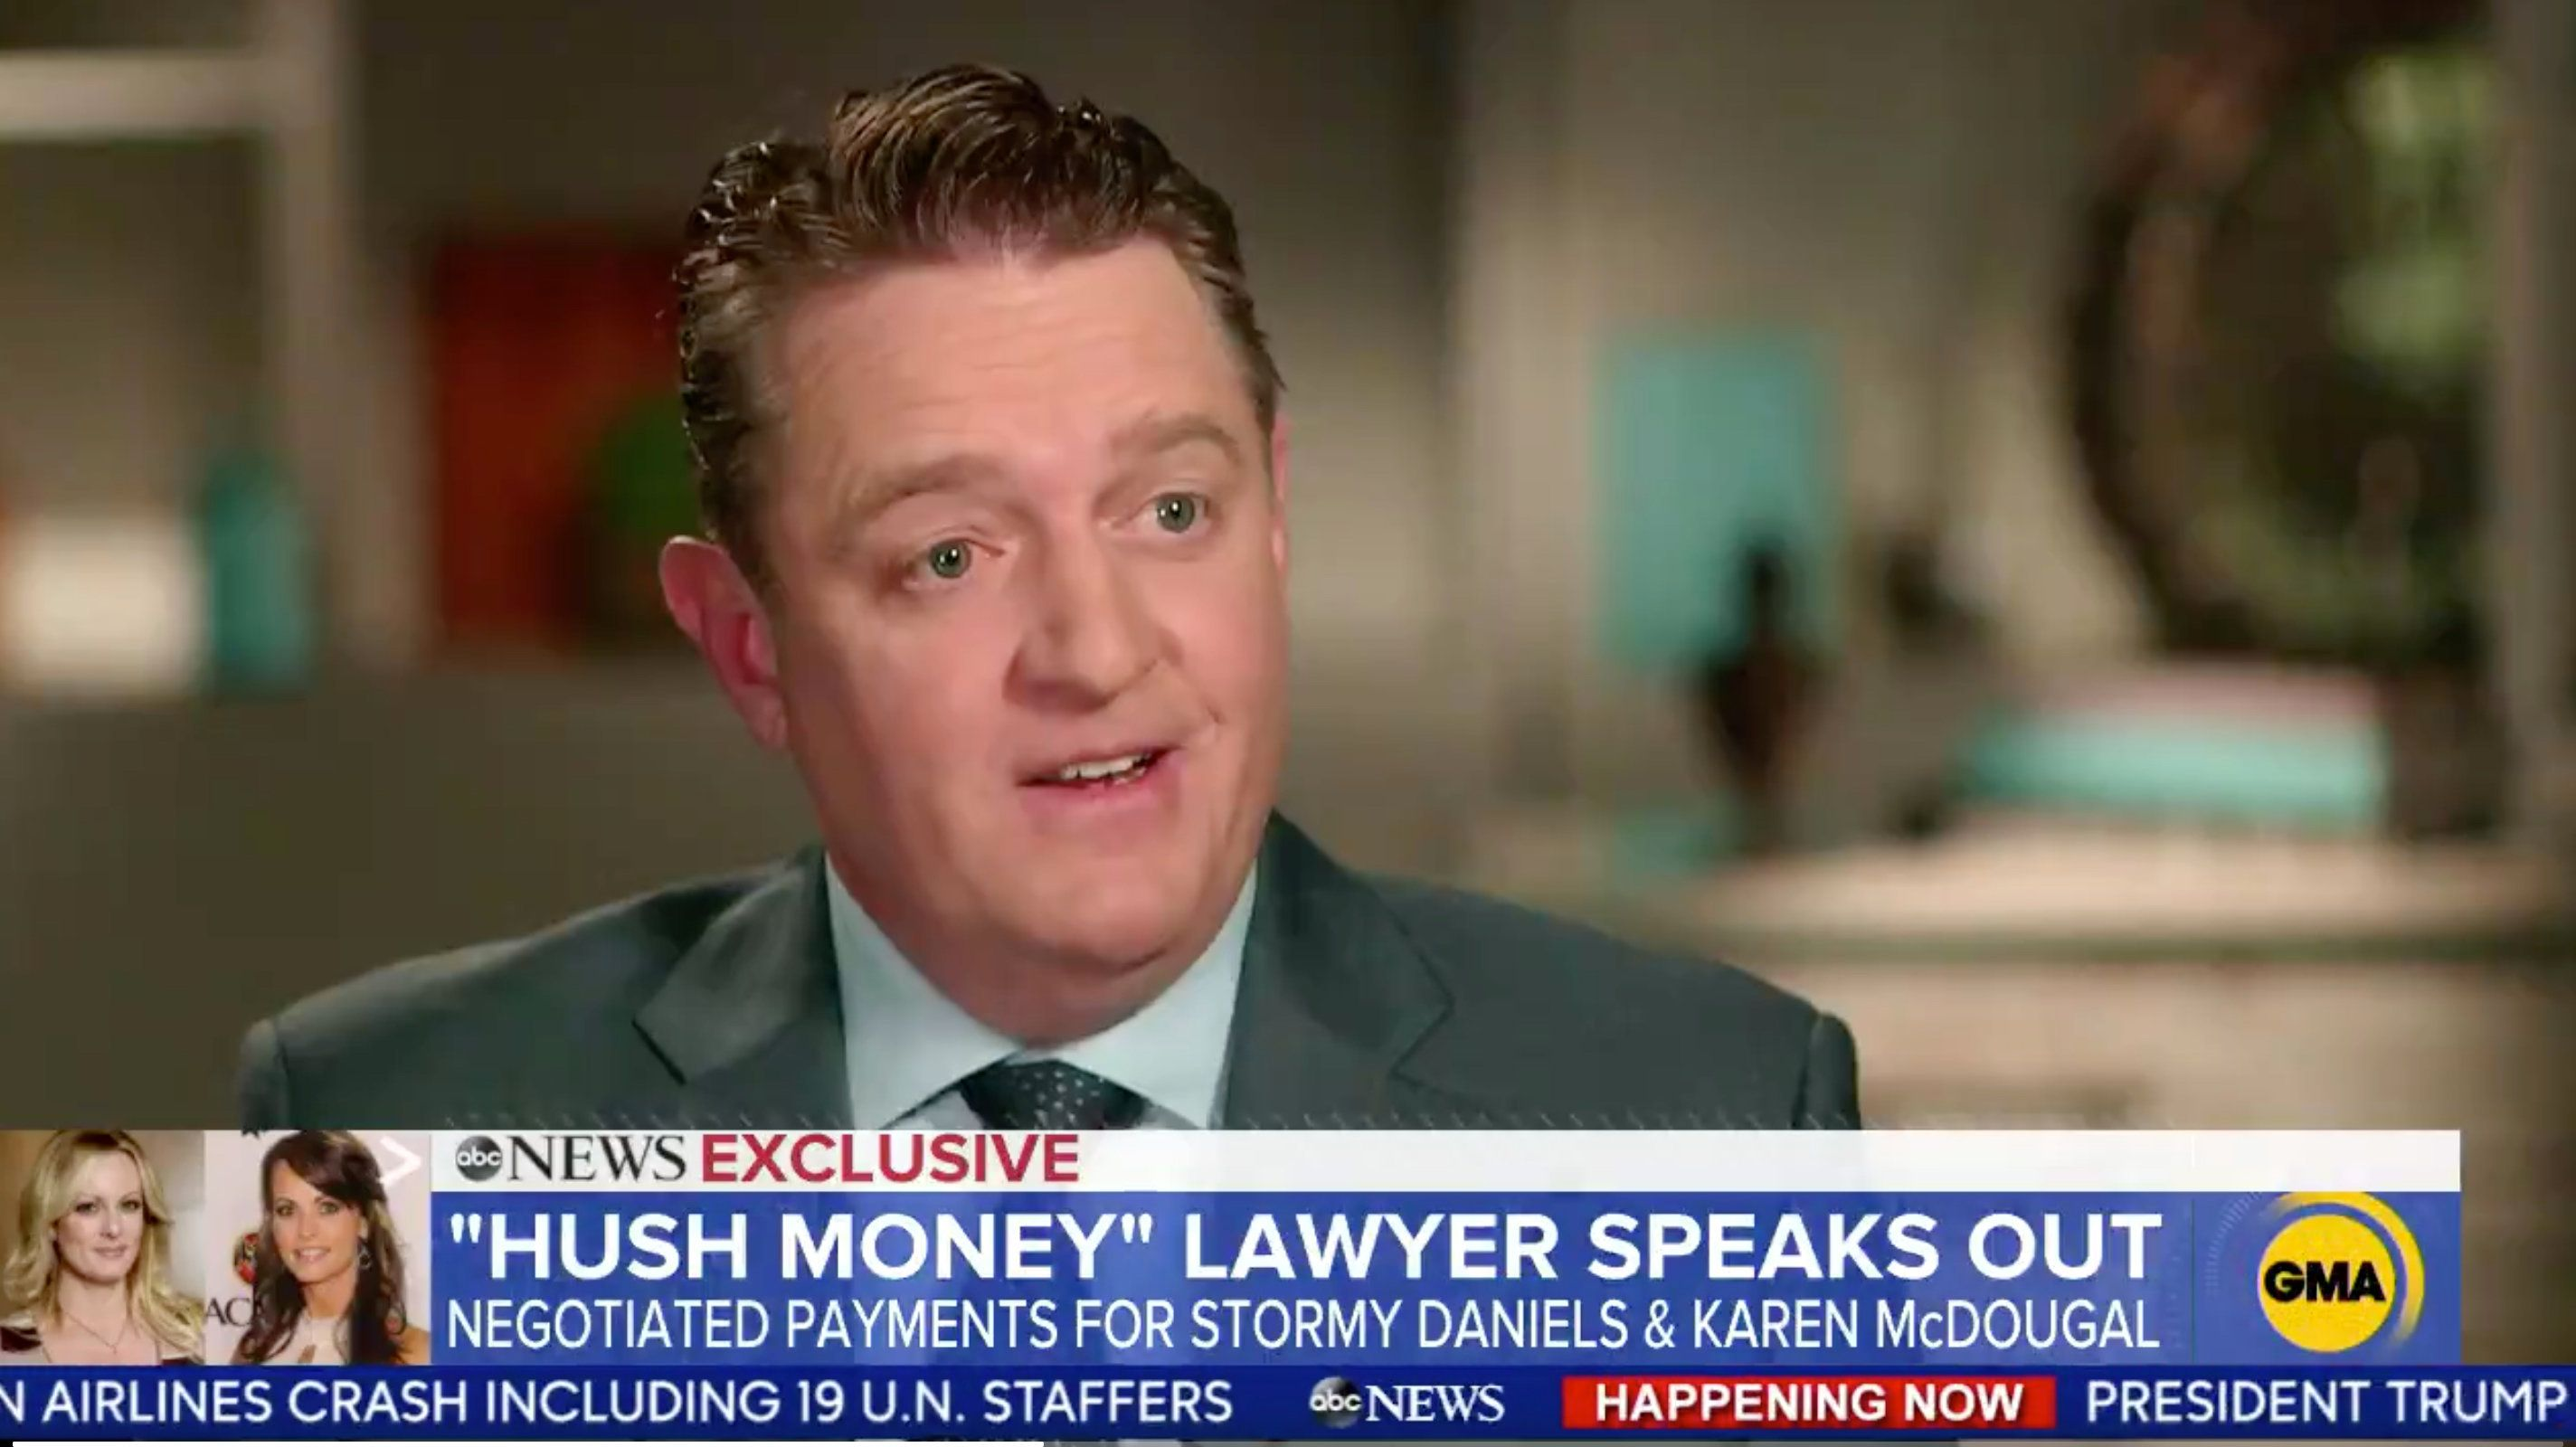 Porn star Stormy Daniels' former attorney Keith Davidson claimed a $130,000 payout he orchestrated for her silence on an alleged affair with President Donald Trump was politically motivated.